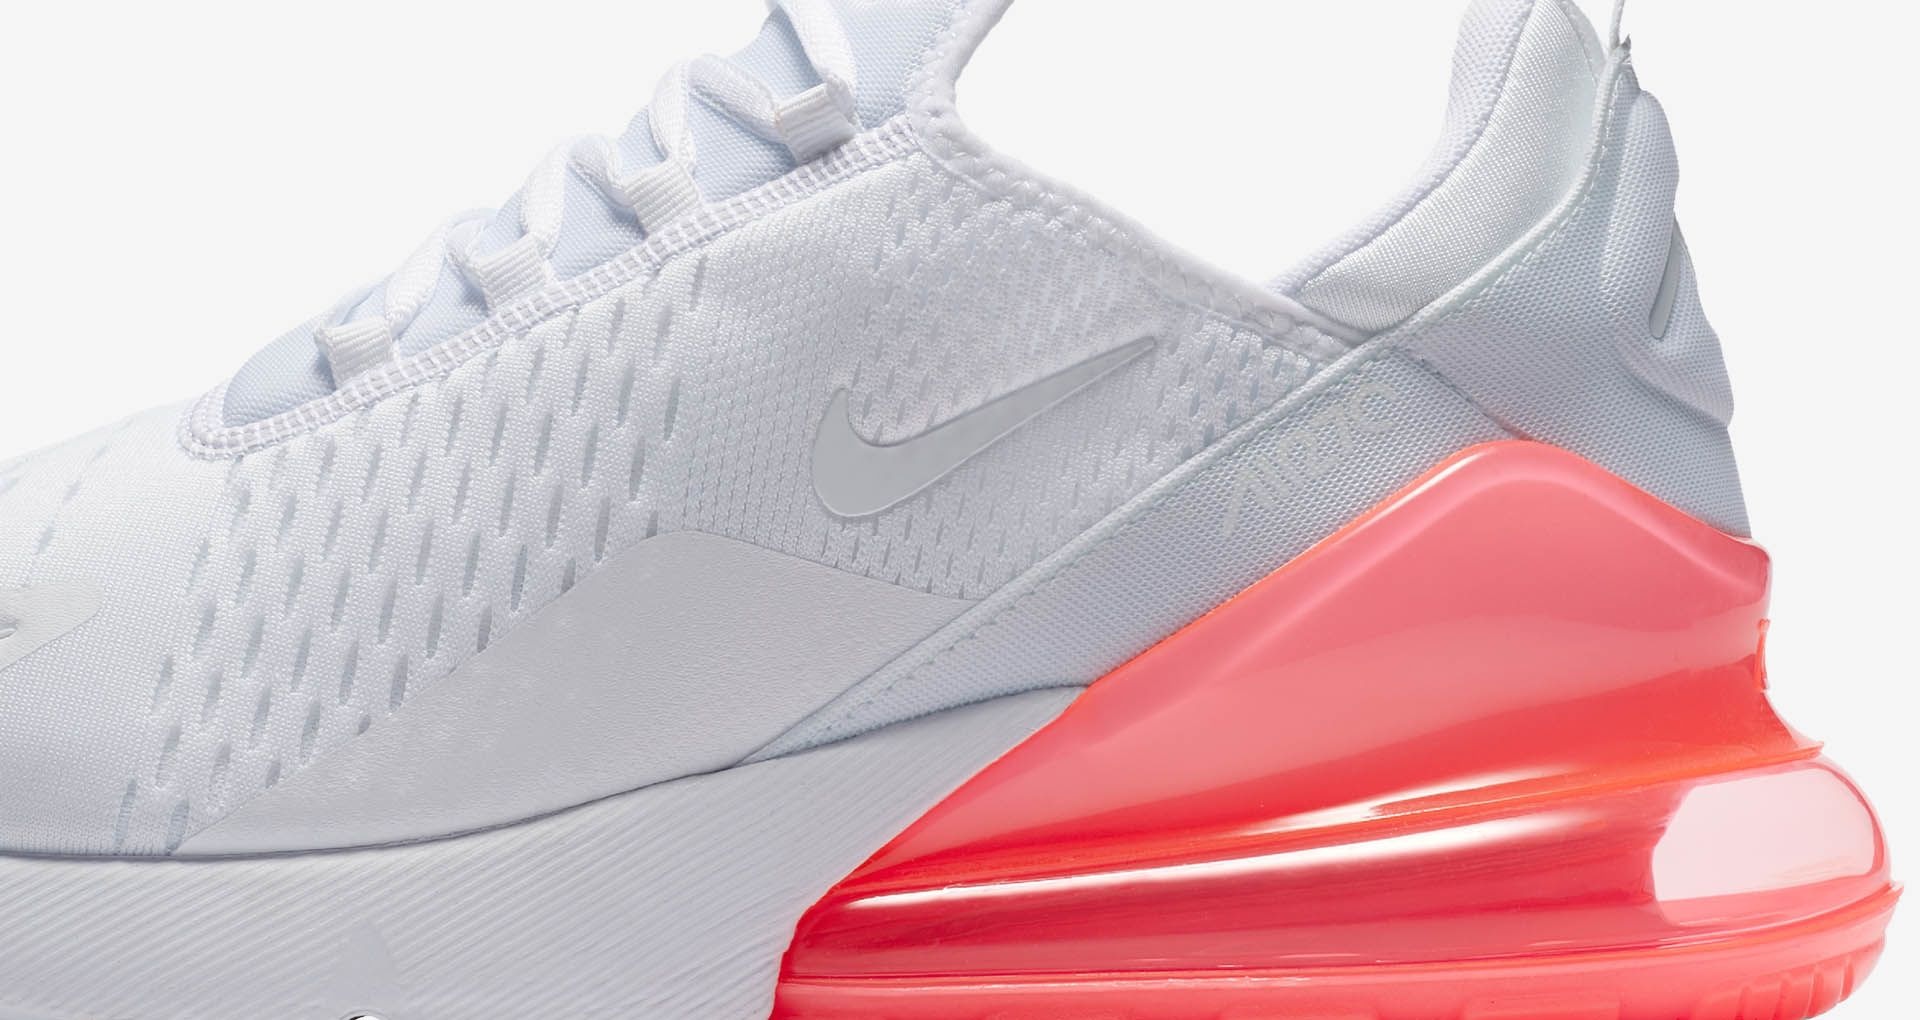 Nike Air Max 270 White Pack 'Hot Punch' Release Date. Nike+